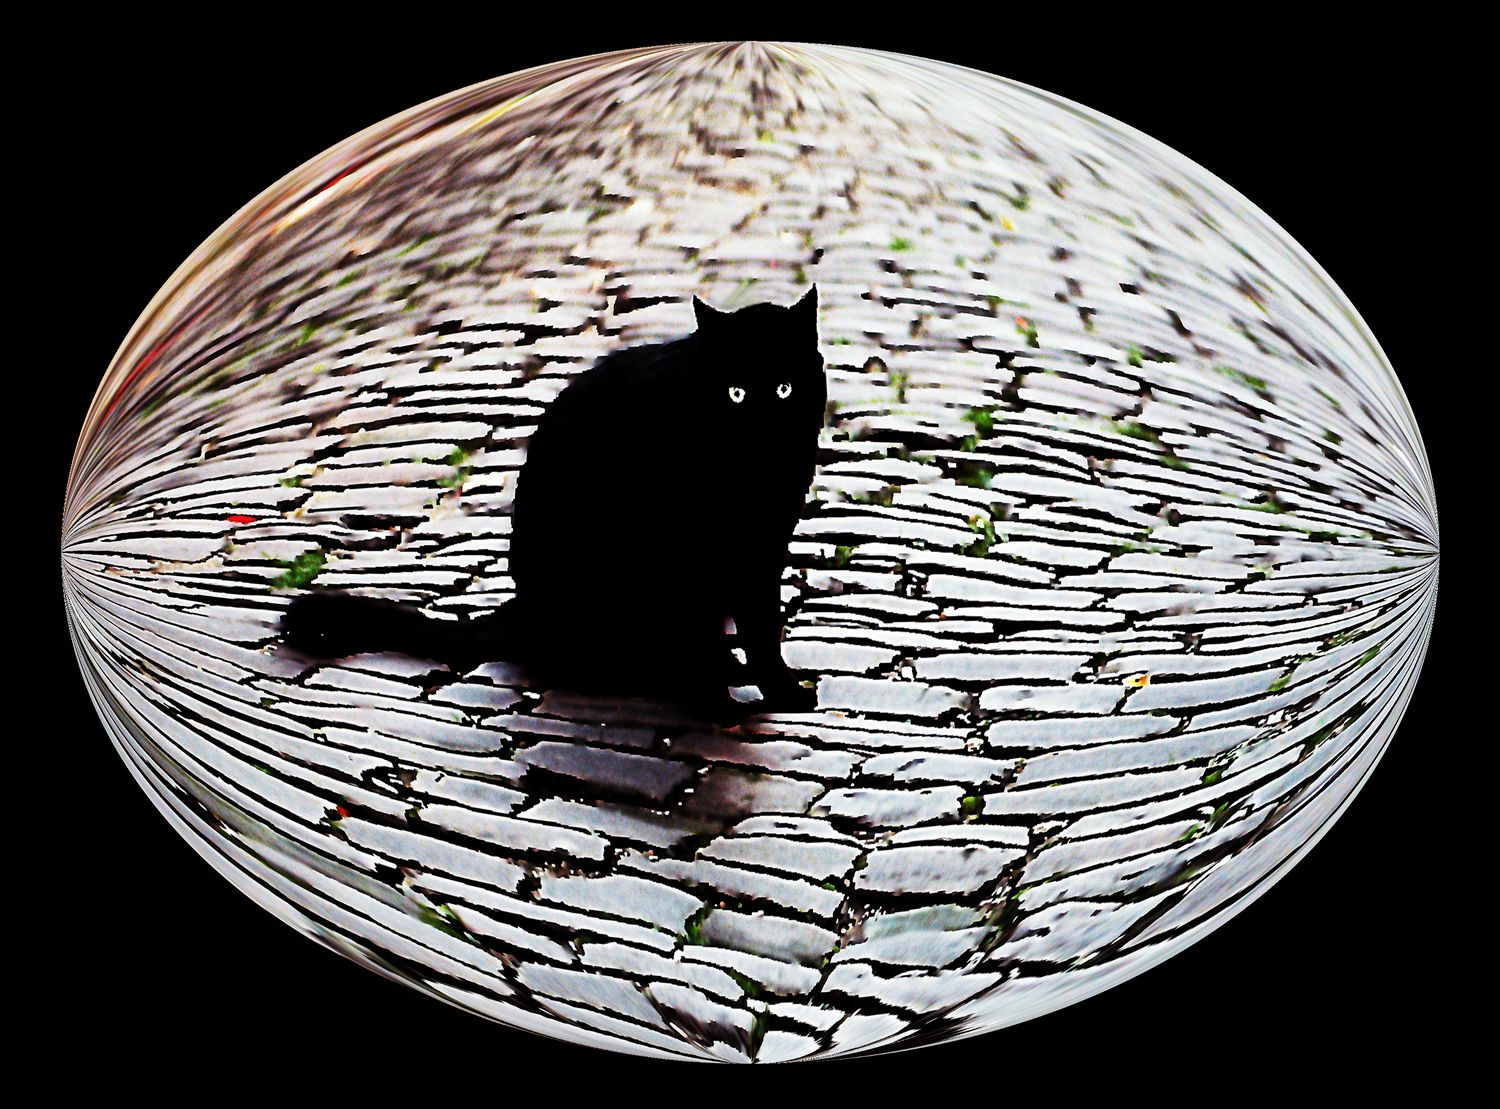 - A cat in Cordes sur Ciel represents all of the cats in France -  Tony Karp's Bubble Pictures - From 1959 to 2013 - Tony Karp, design, art, photography, techno-impressionist, techno-impressionism, aerial photography , drone , drones , dji , mavic pro , video , 3D printing - Books -